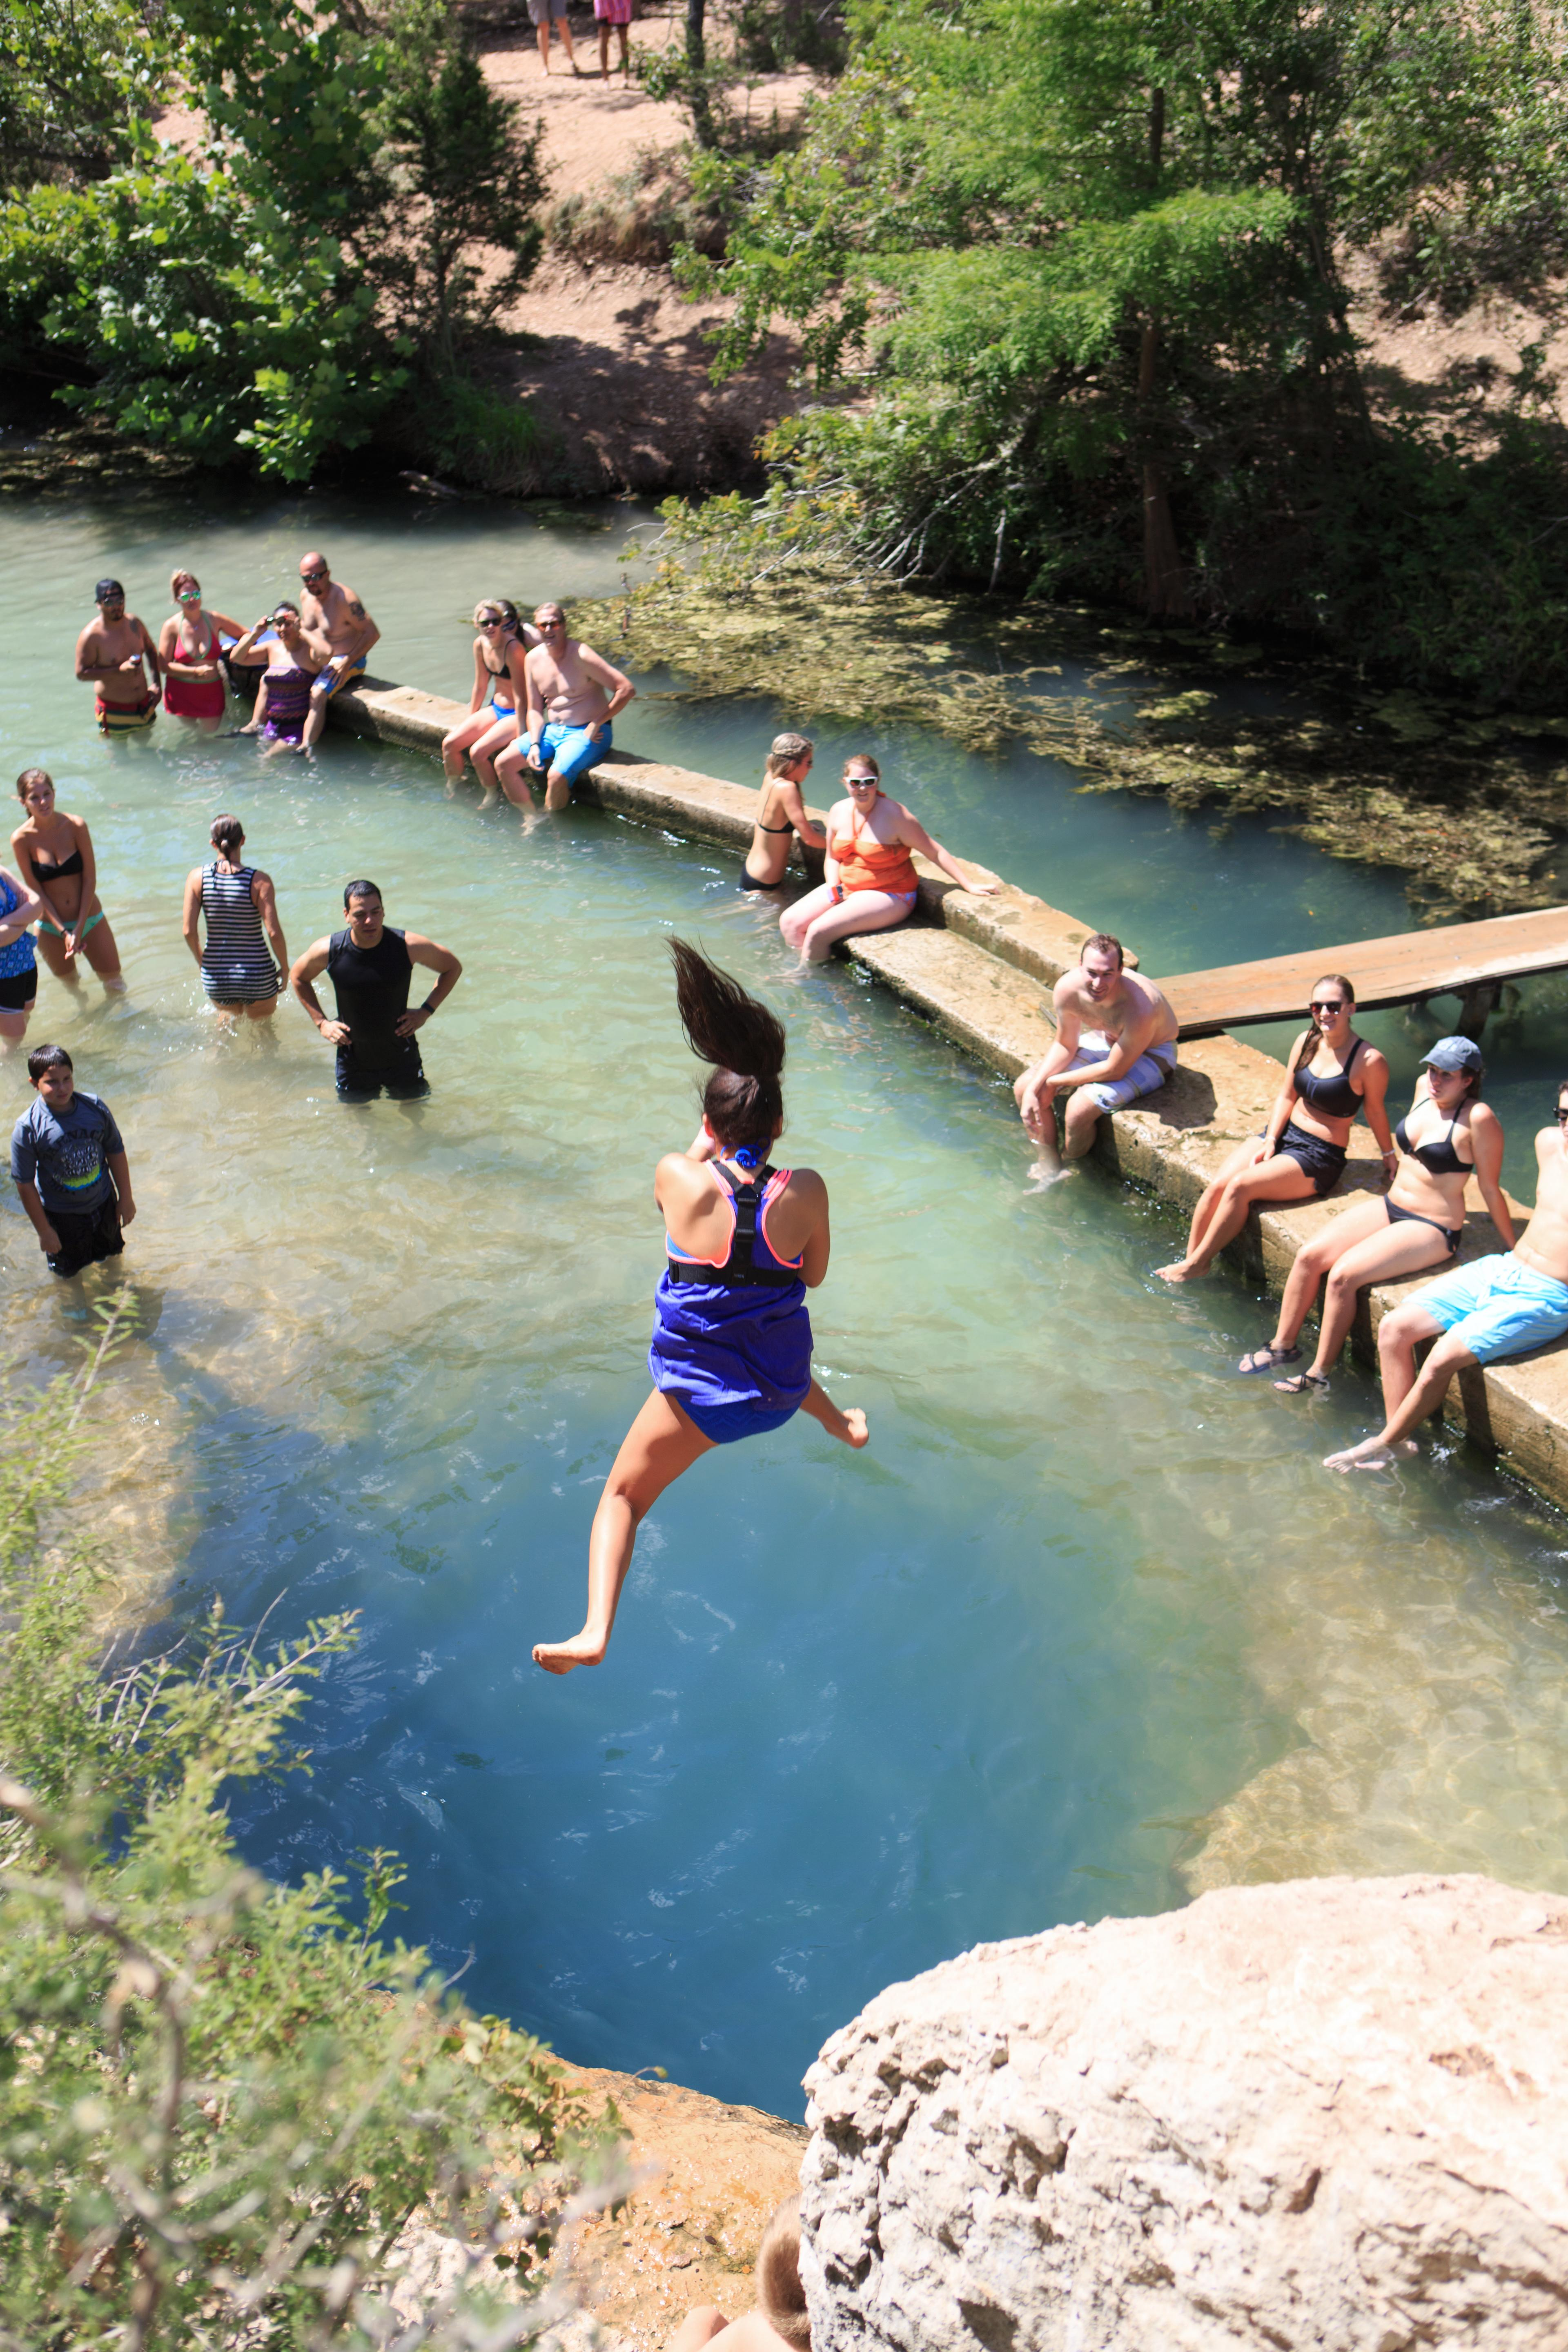 Jacob's Well Swimming Hole, Wimberly, Texas